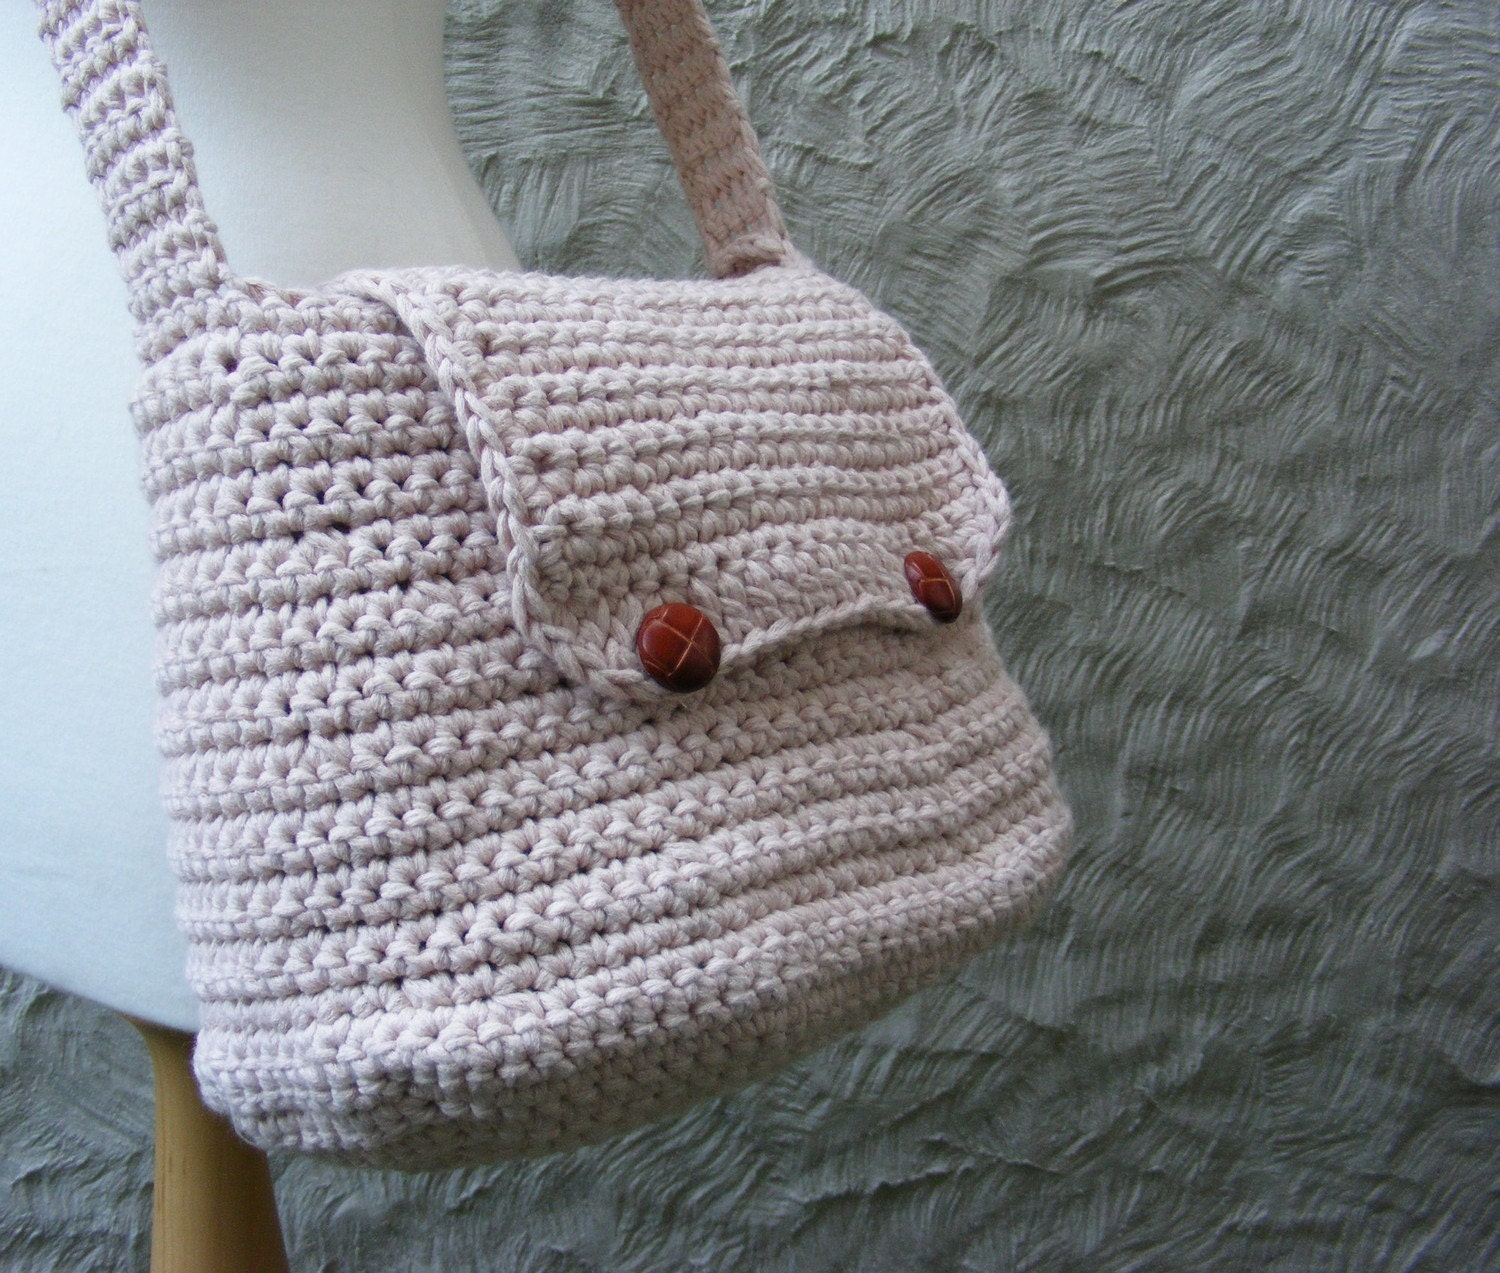 Free Crochet Purse And Bag Patterns : purse patterns free crochet bag and purse patterns little eyelash bag ...